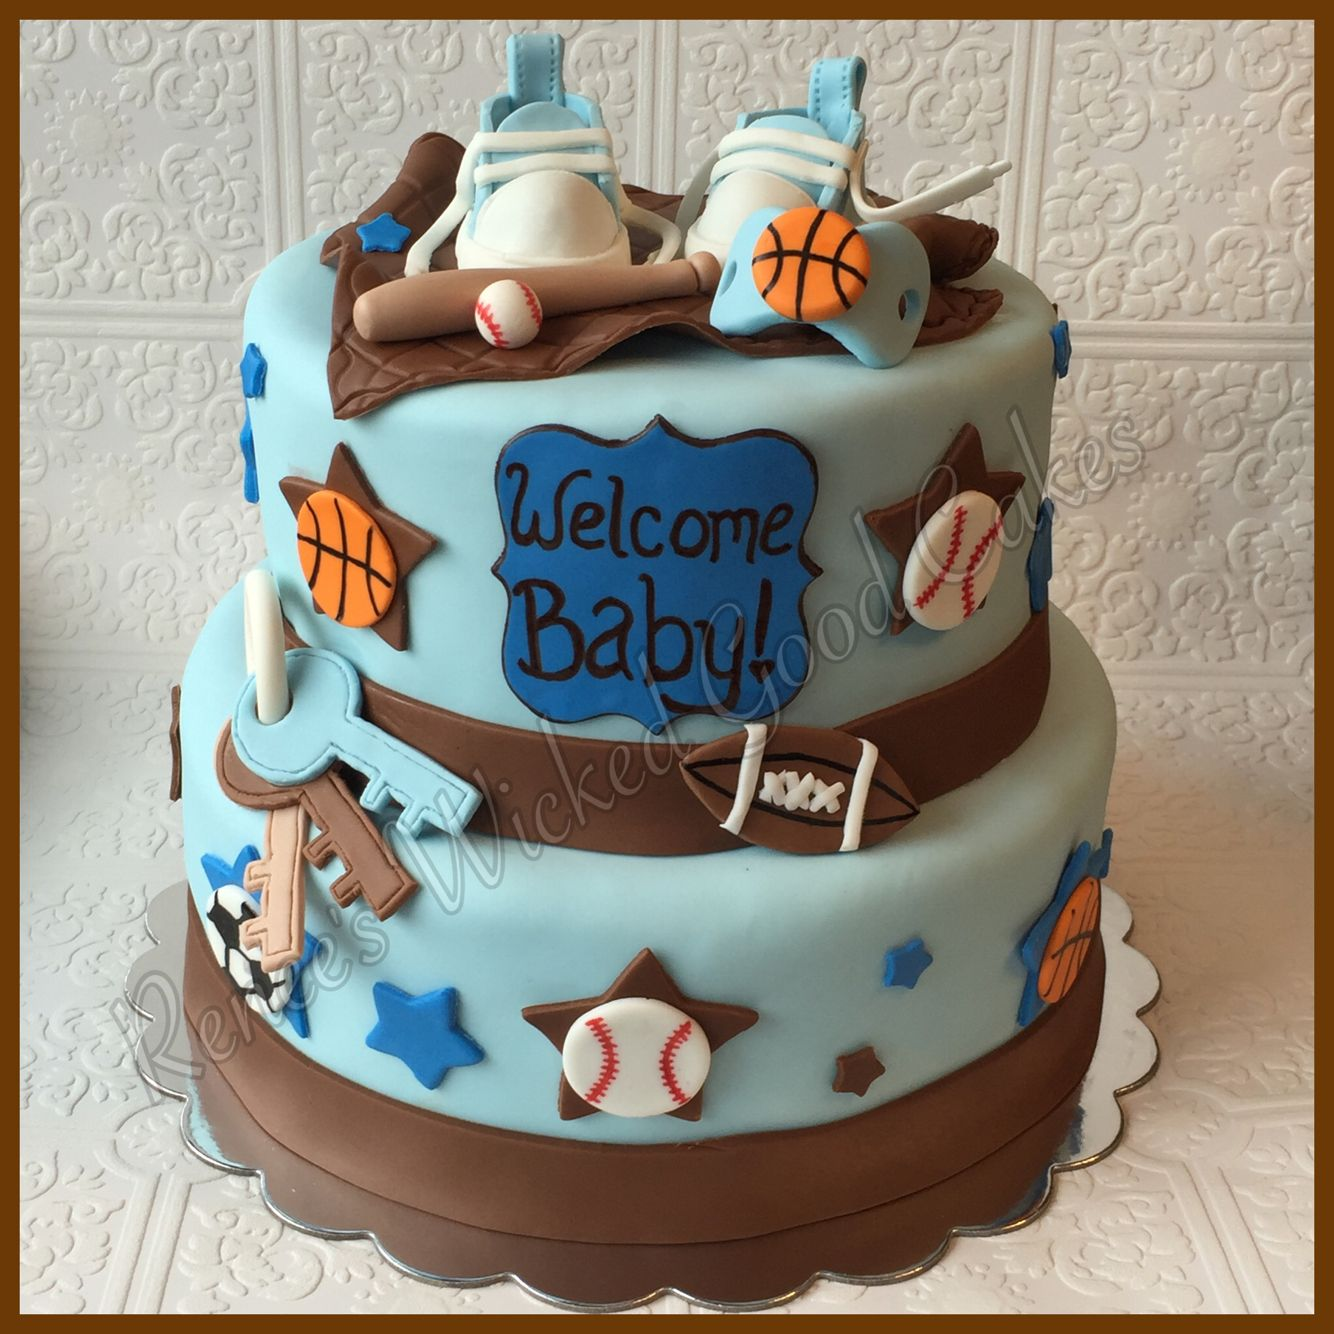 Boys Baby Shower Cake: Welcome Baby! Sports Themed Baby Shower. Baby Boy. Renee's